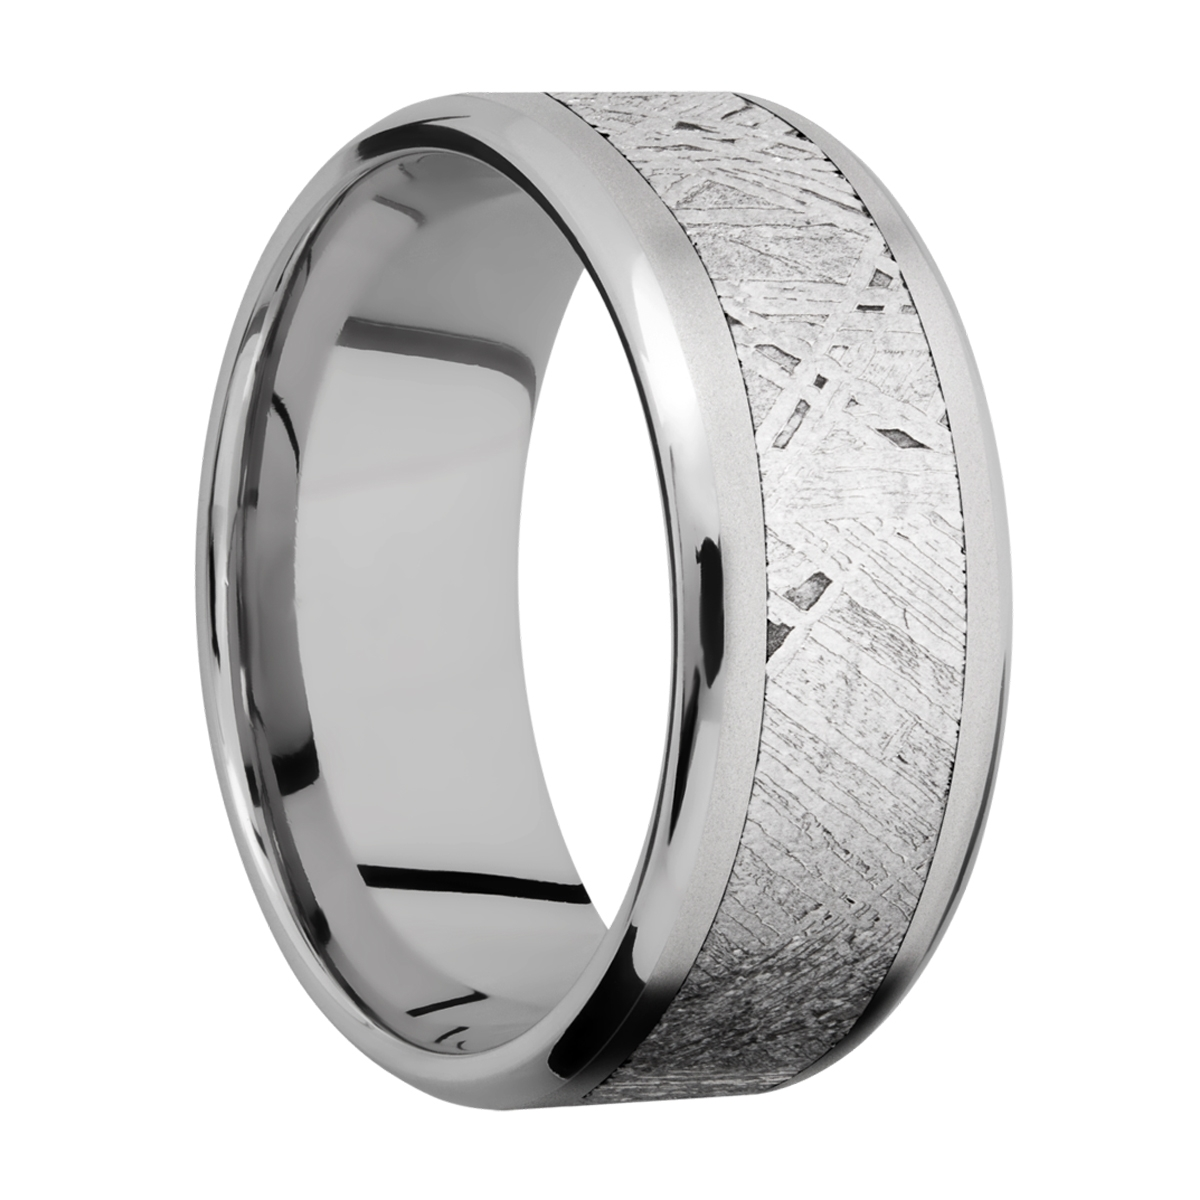 Lashbrook 9B16(NS)/METEORITE Titanium Wedding Ring or Band Alternative View 1